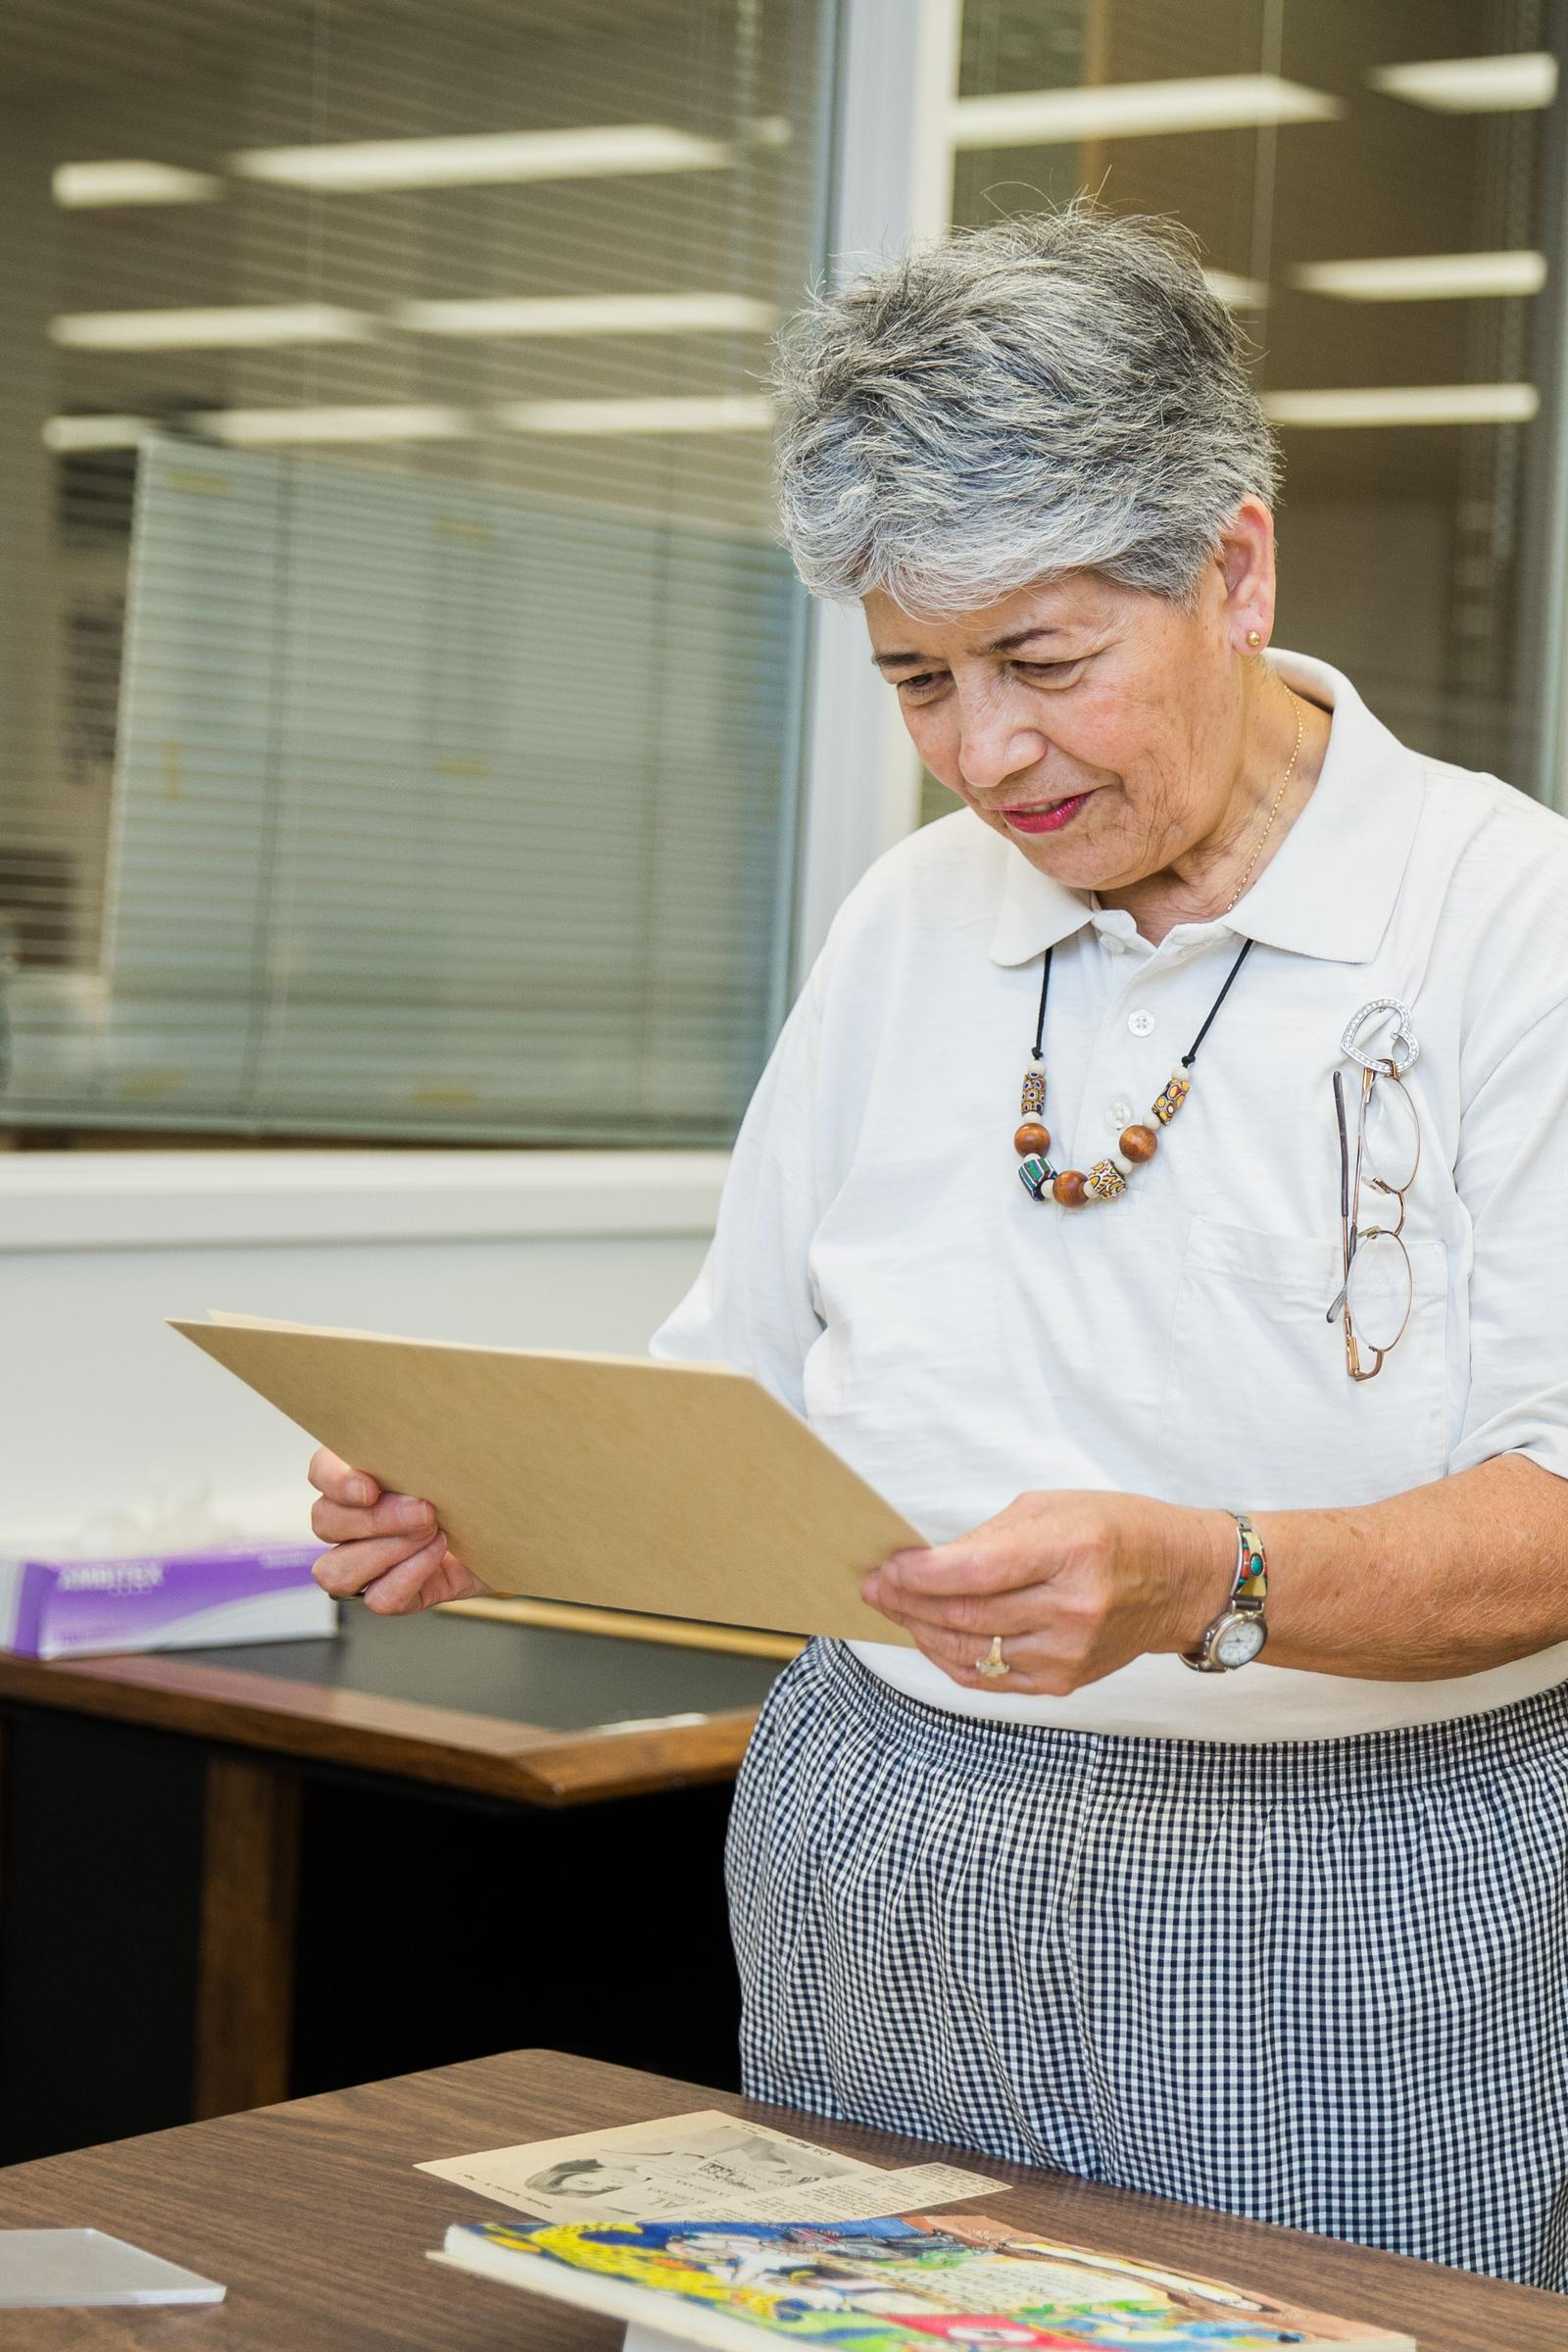 A woman looks at archival items at the library